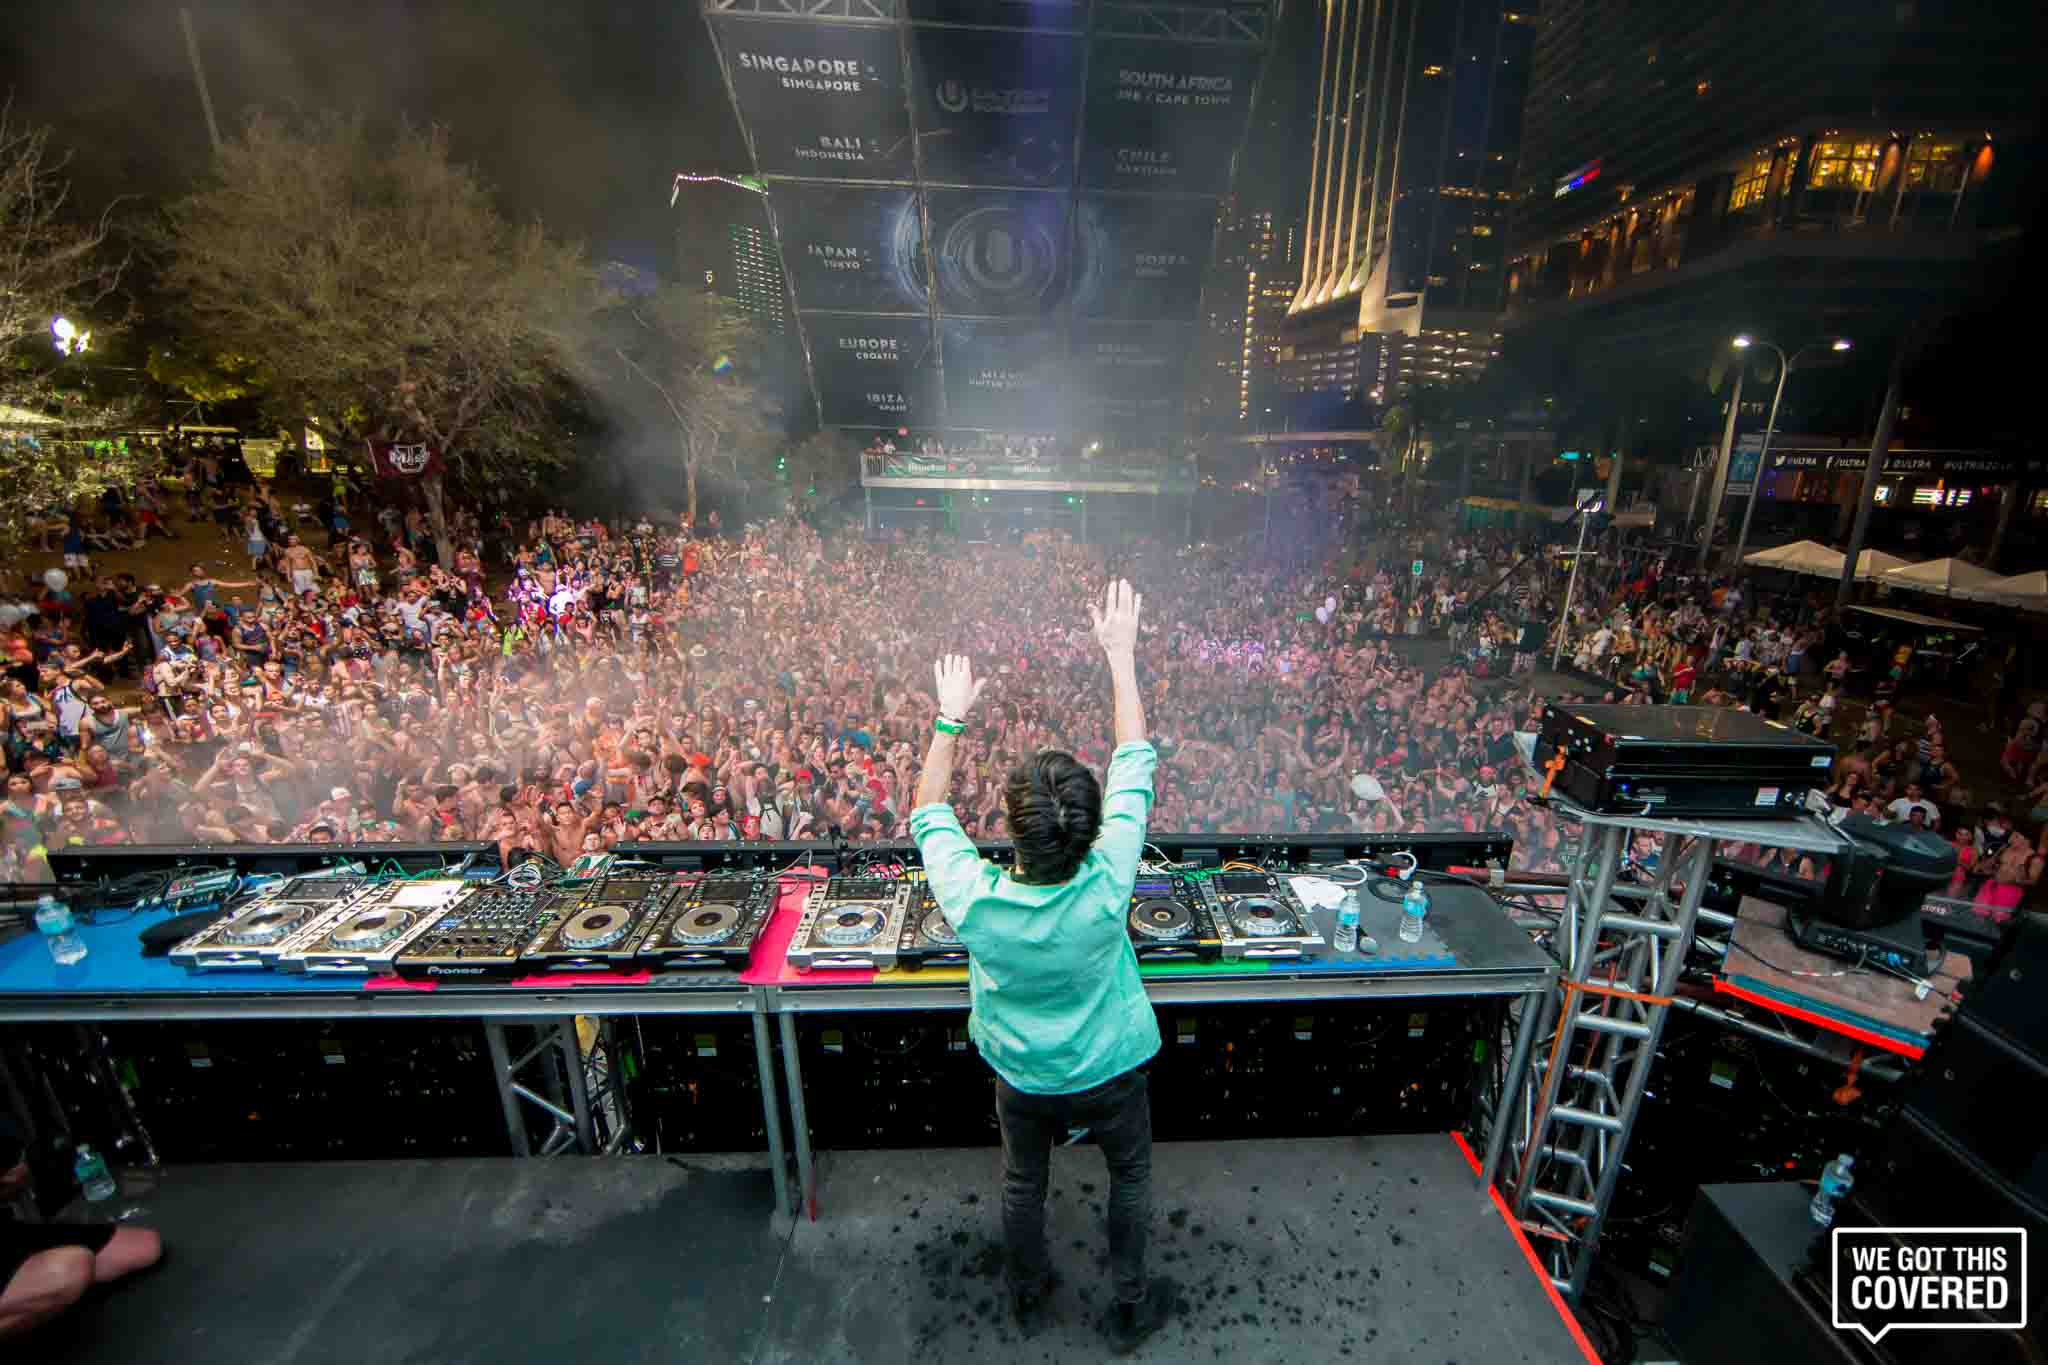 Gallery: Ultra Music Festival 2016 - Day 2